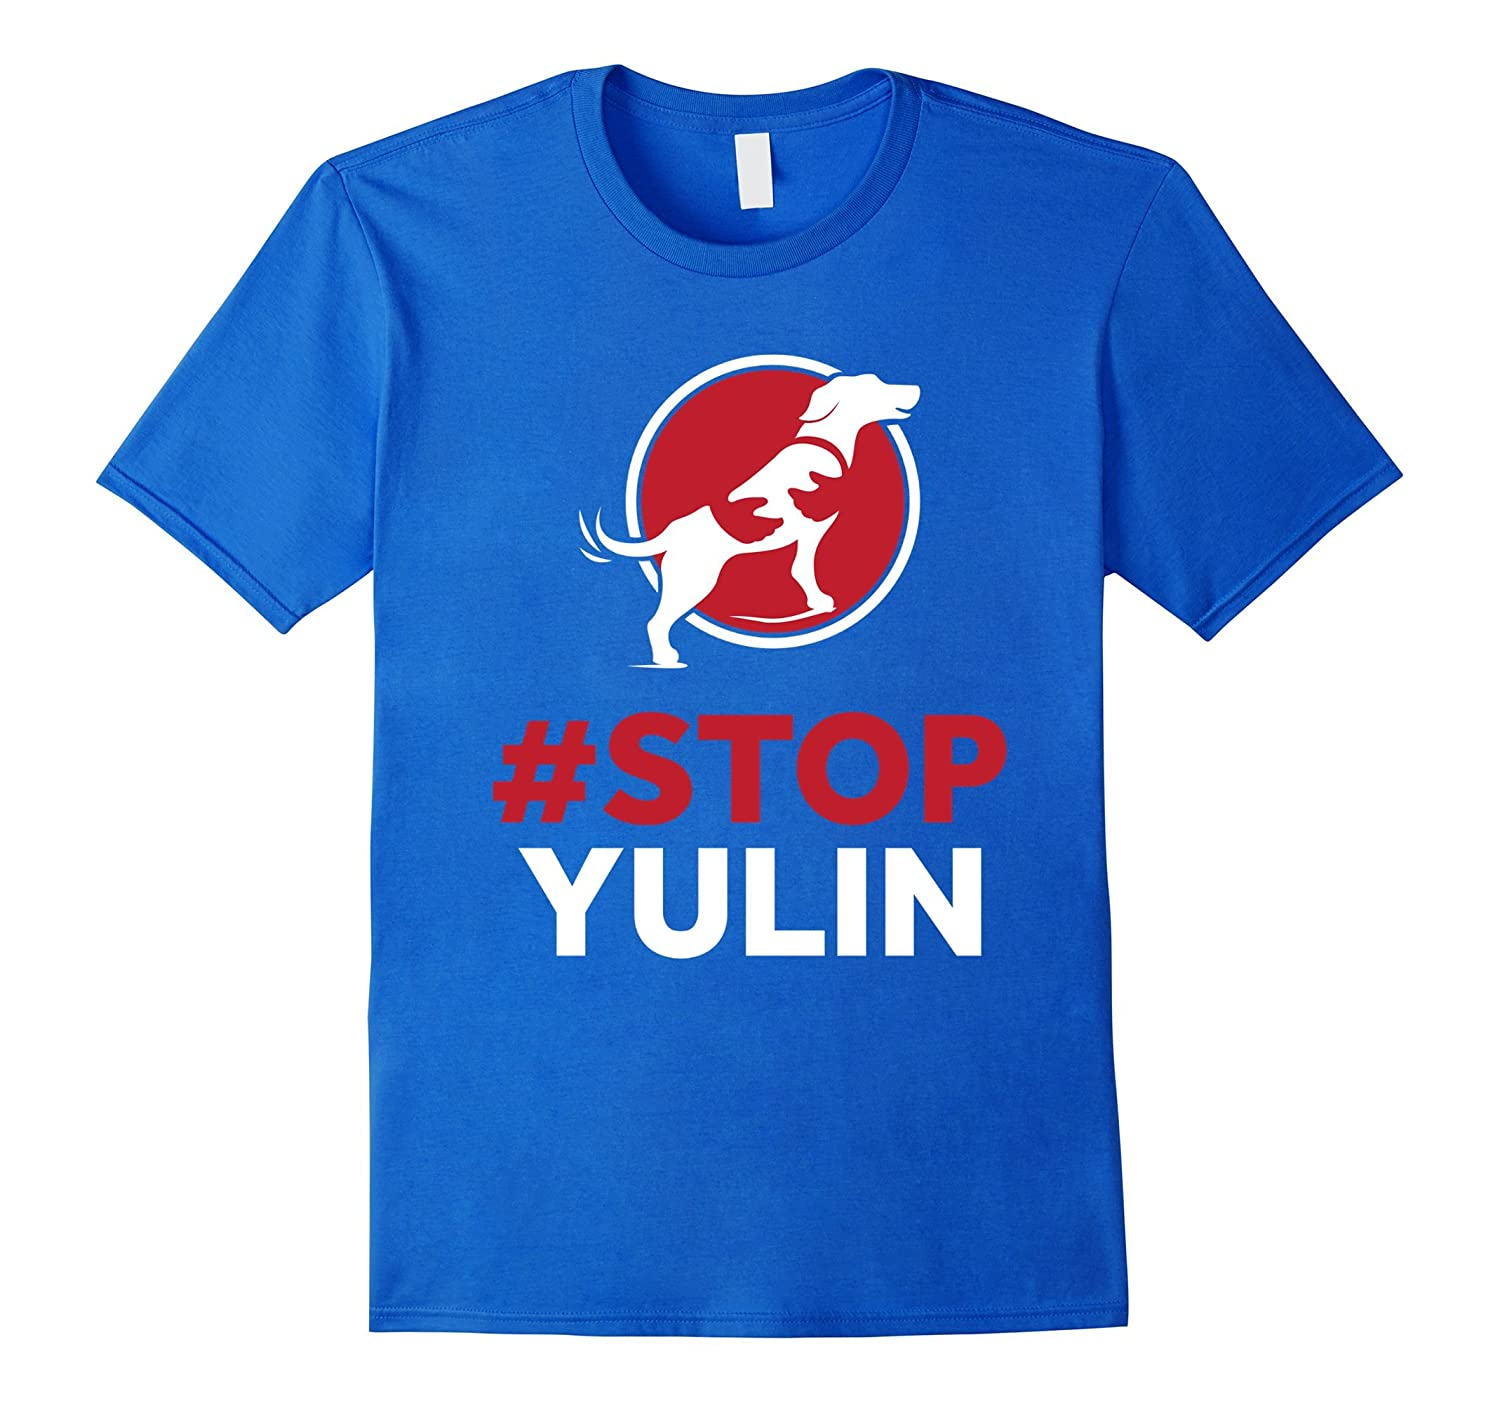 #Stop Yulin T-shirt - Yulin Dog shirt-mt